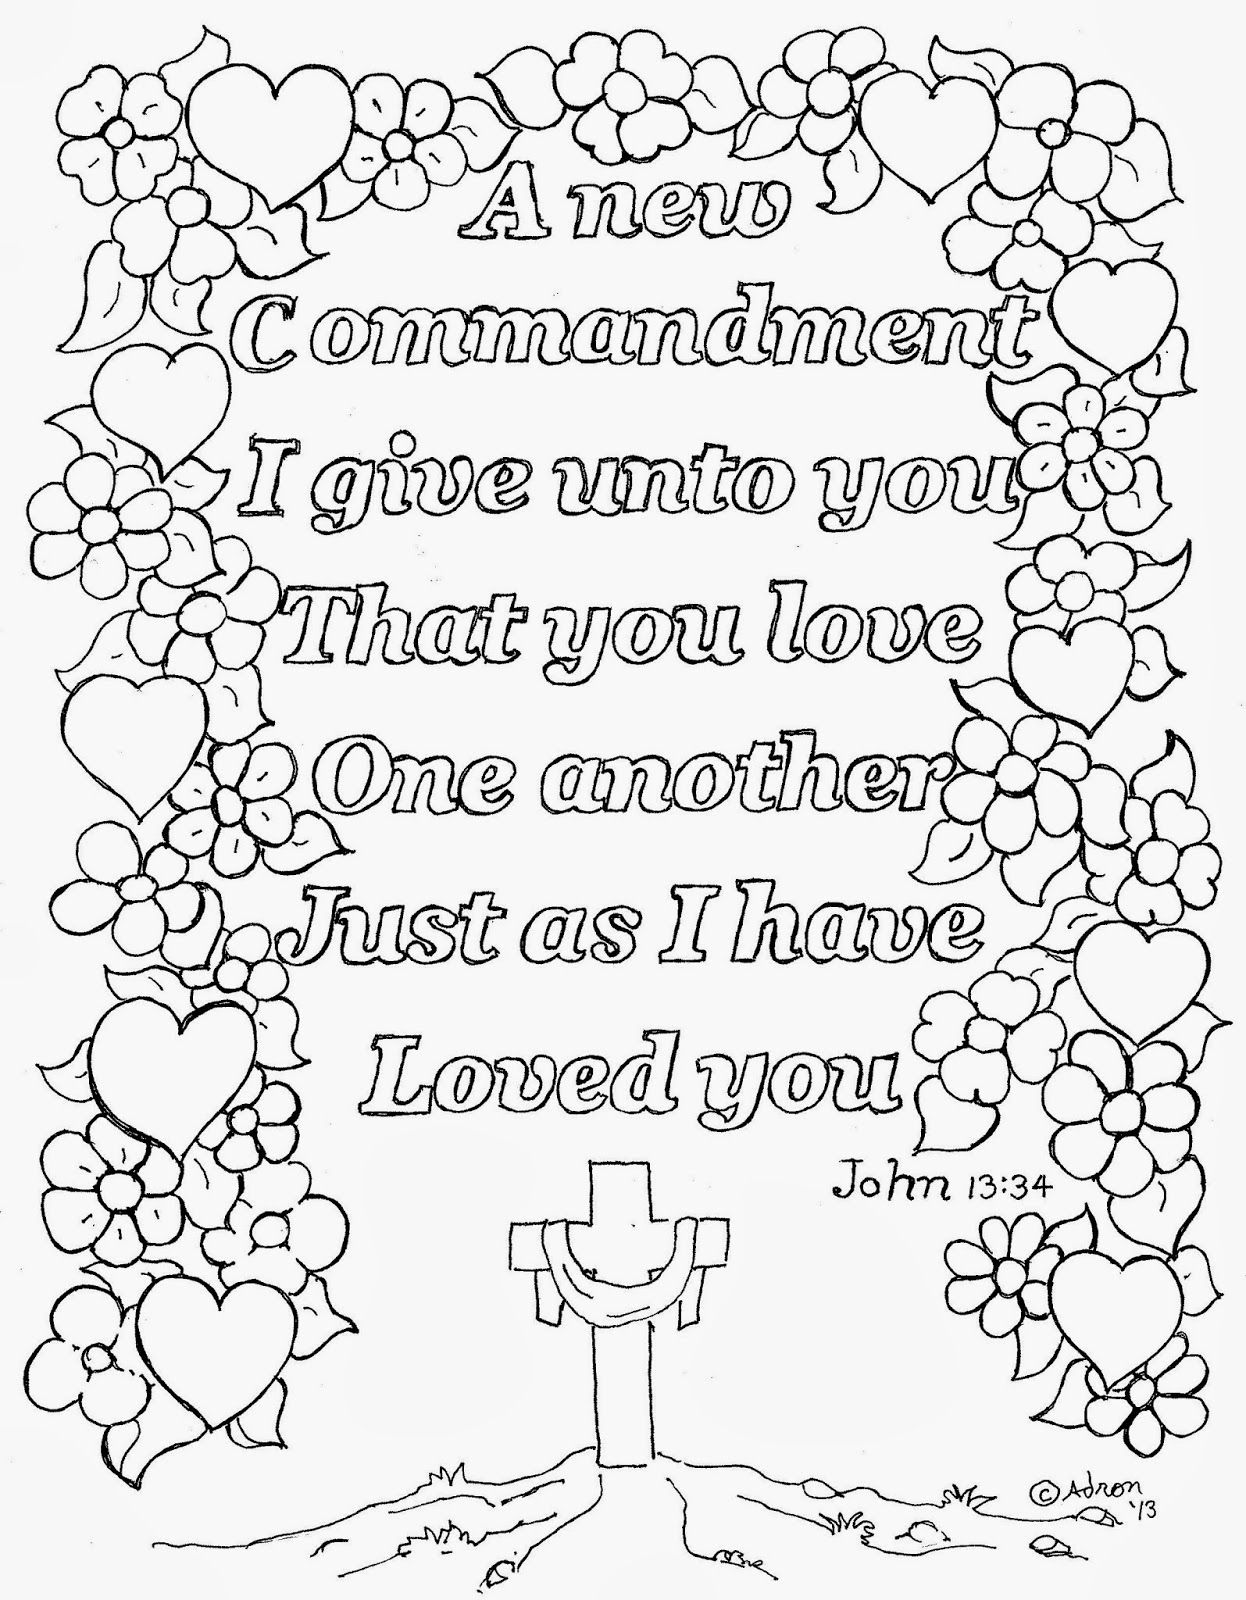 Coloring pages with bible verses - A Free Kids Coloring Page With The Words Of The Verse So Kids Can Color It In The Scripture Says A New Commandment I Give Unto You That